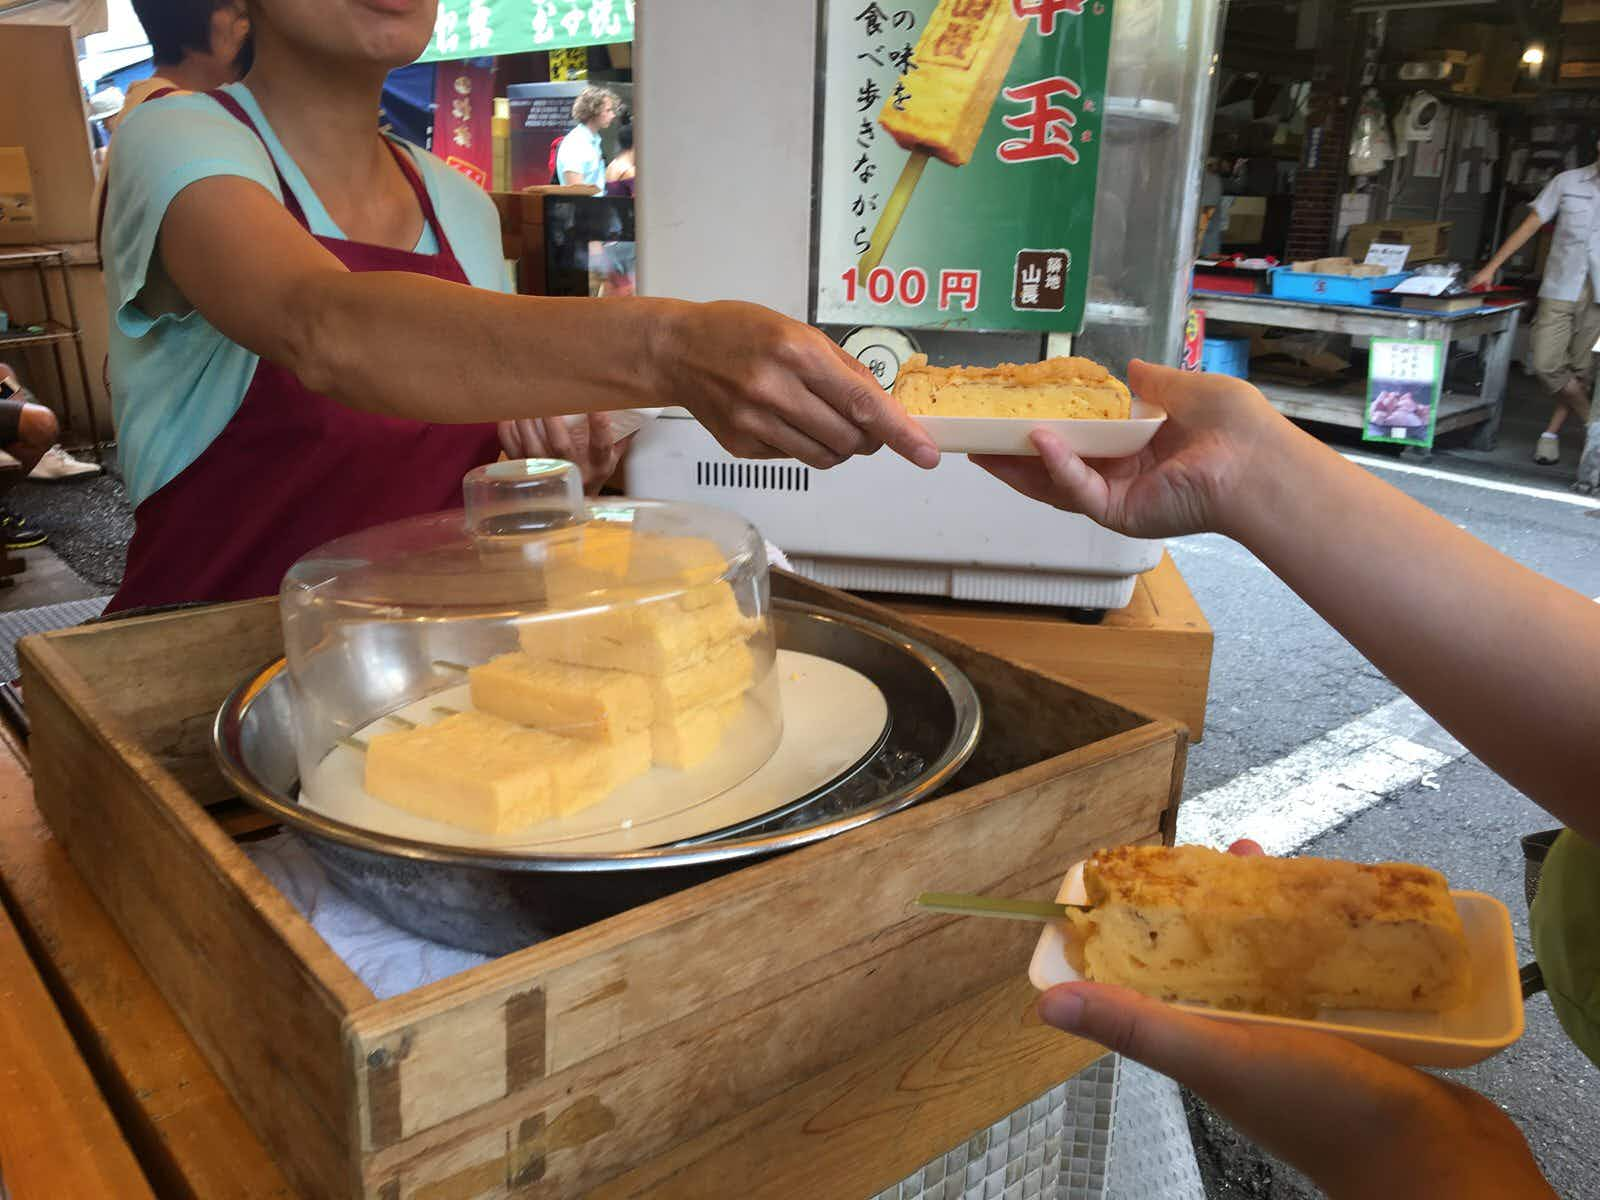 A foodie's day in Tokyo